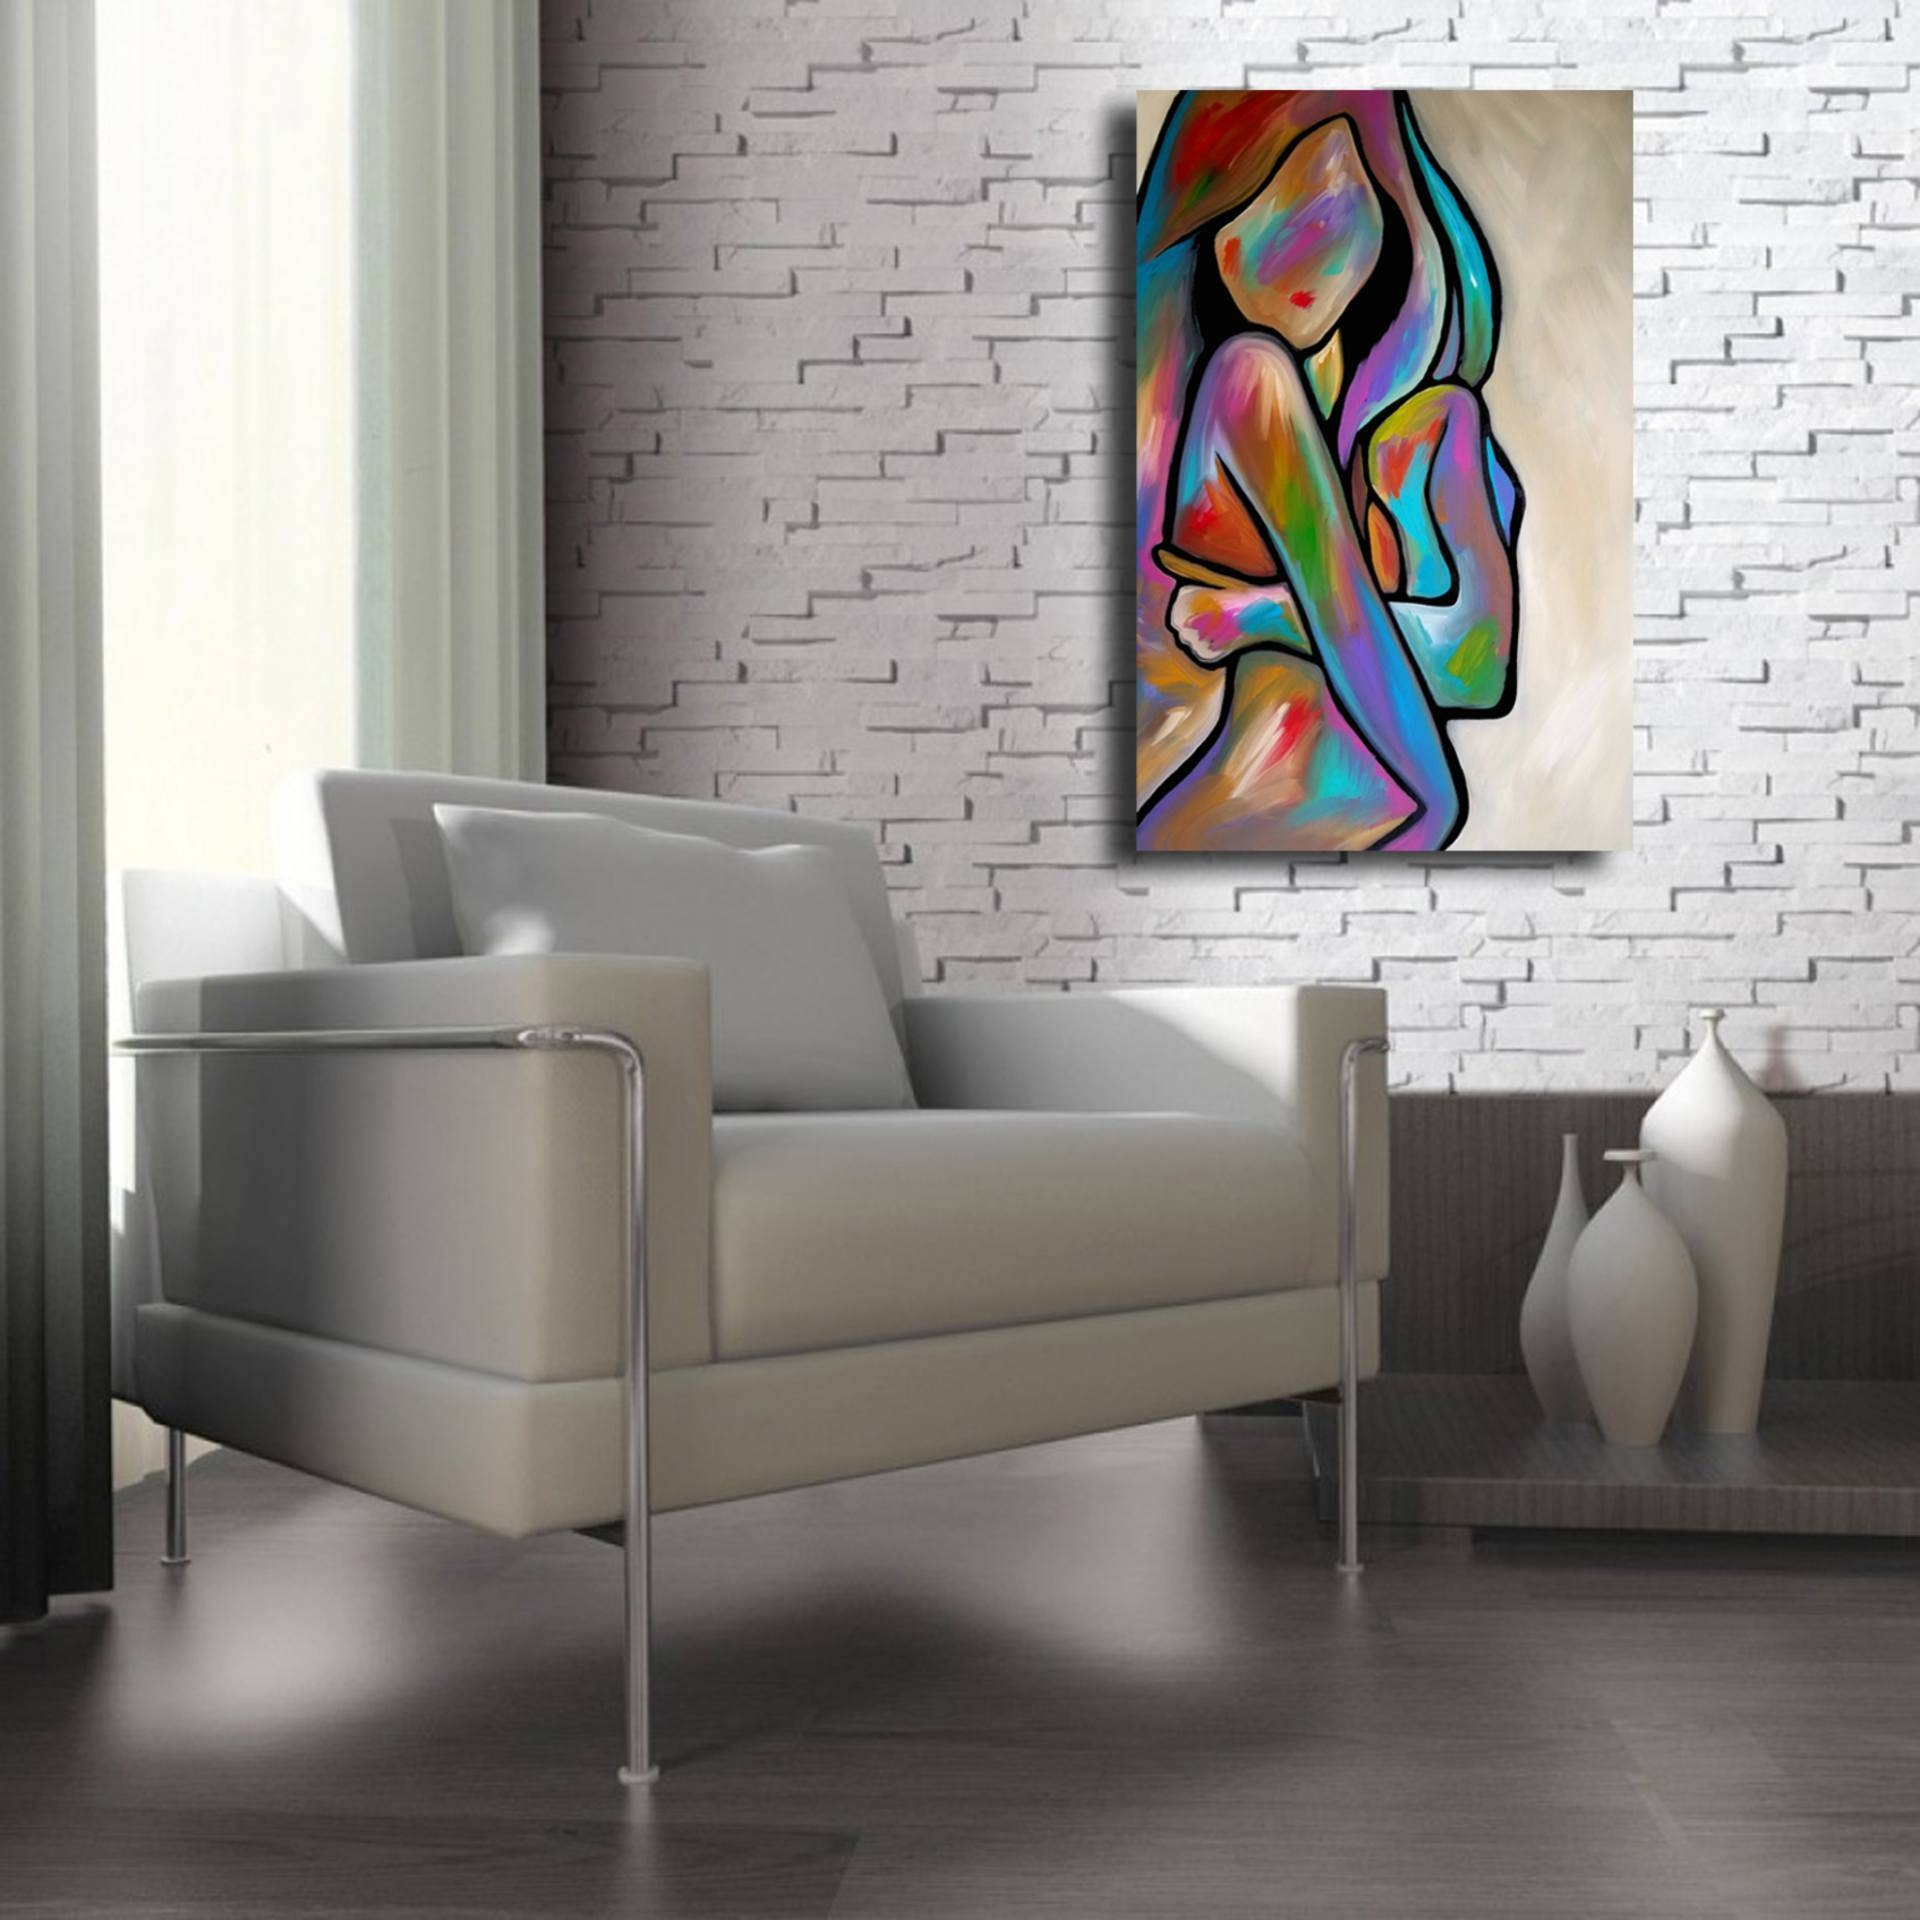 Saatchi Art: Sensual Calm Paintingthomas Fedro For Latest Sensual Wall Art (View 11 of 20)